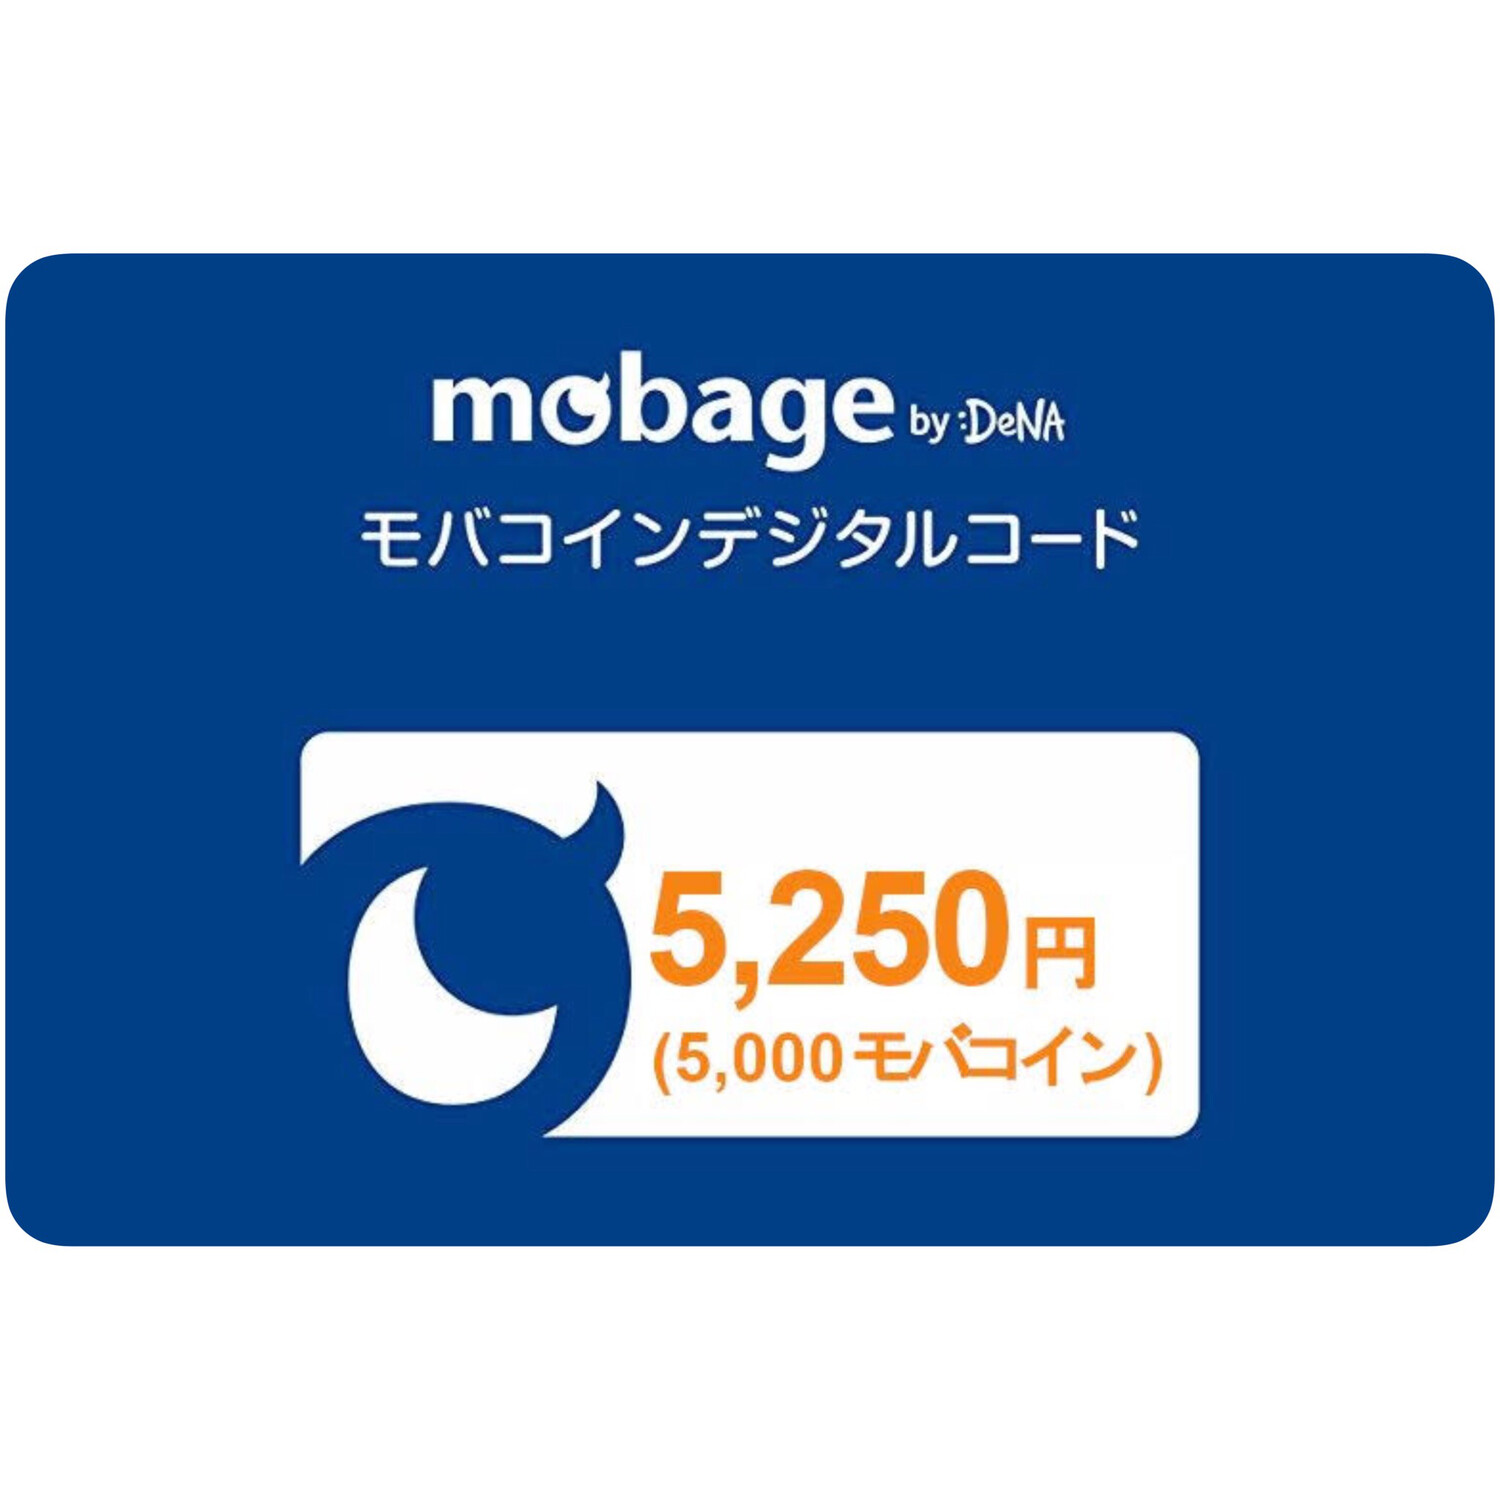 Mobage MobaCoin 5250 Japan Card